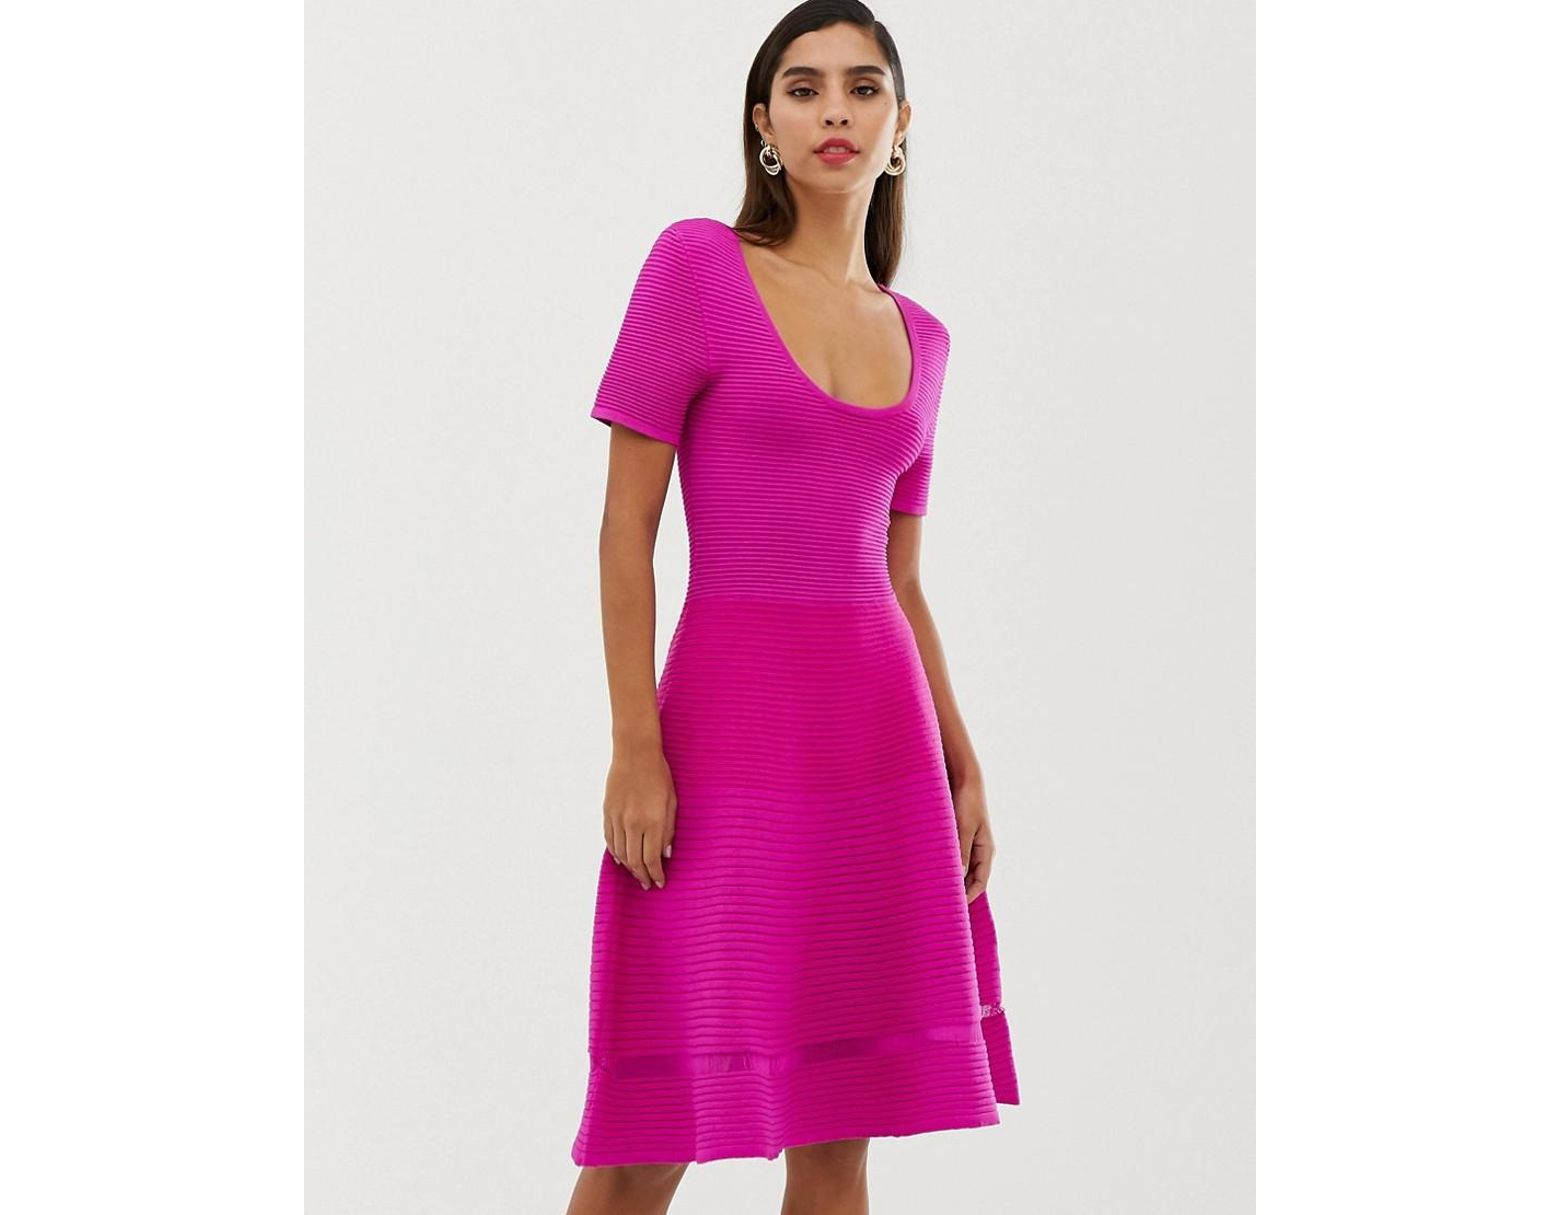 dd17de2f7aa French Connection Volette Crepe Knit Mini Dress in Pink - Lyst